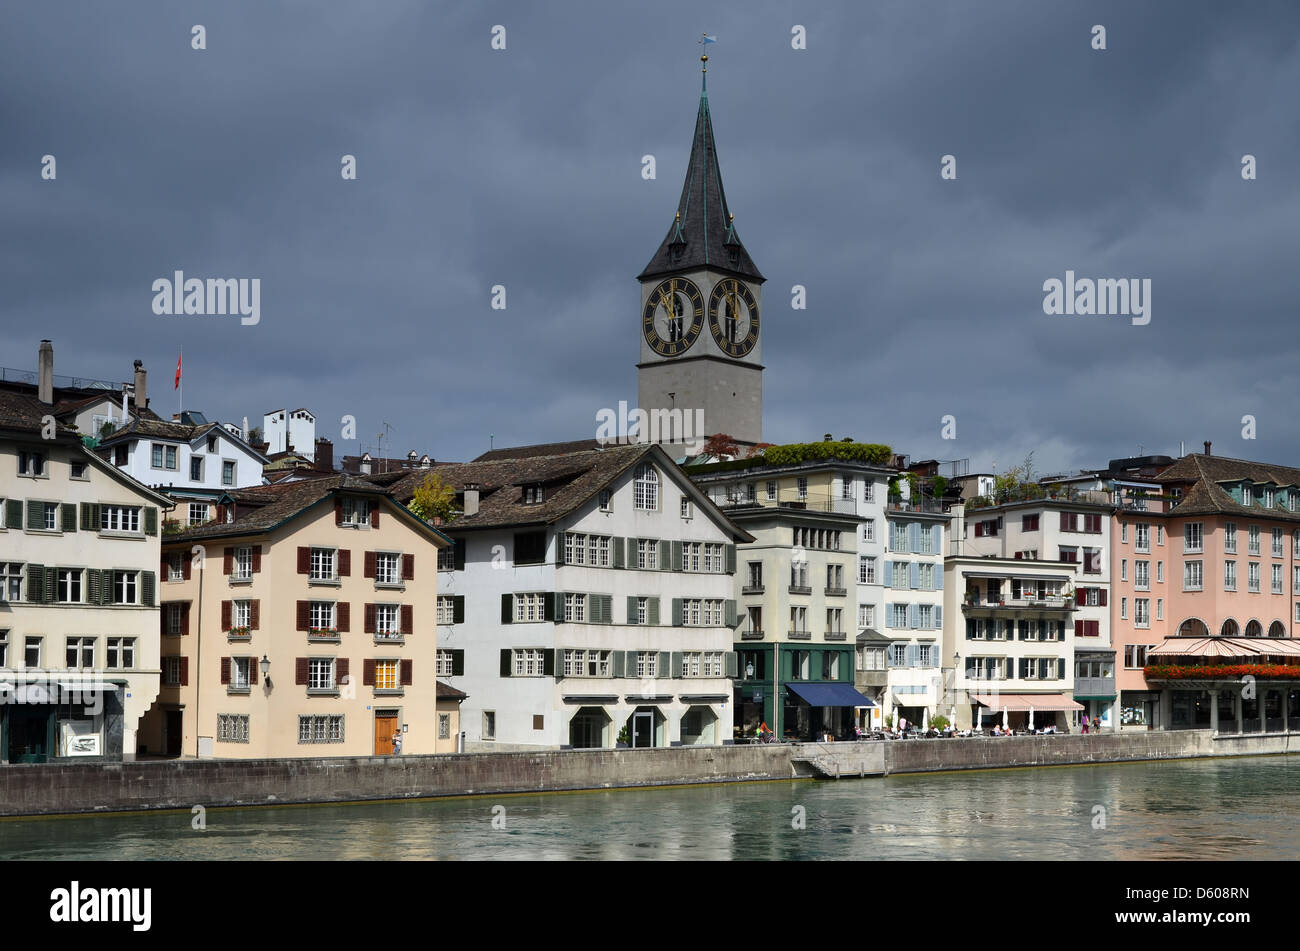 Zurich in Switzerland, medieval city - Stock Image